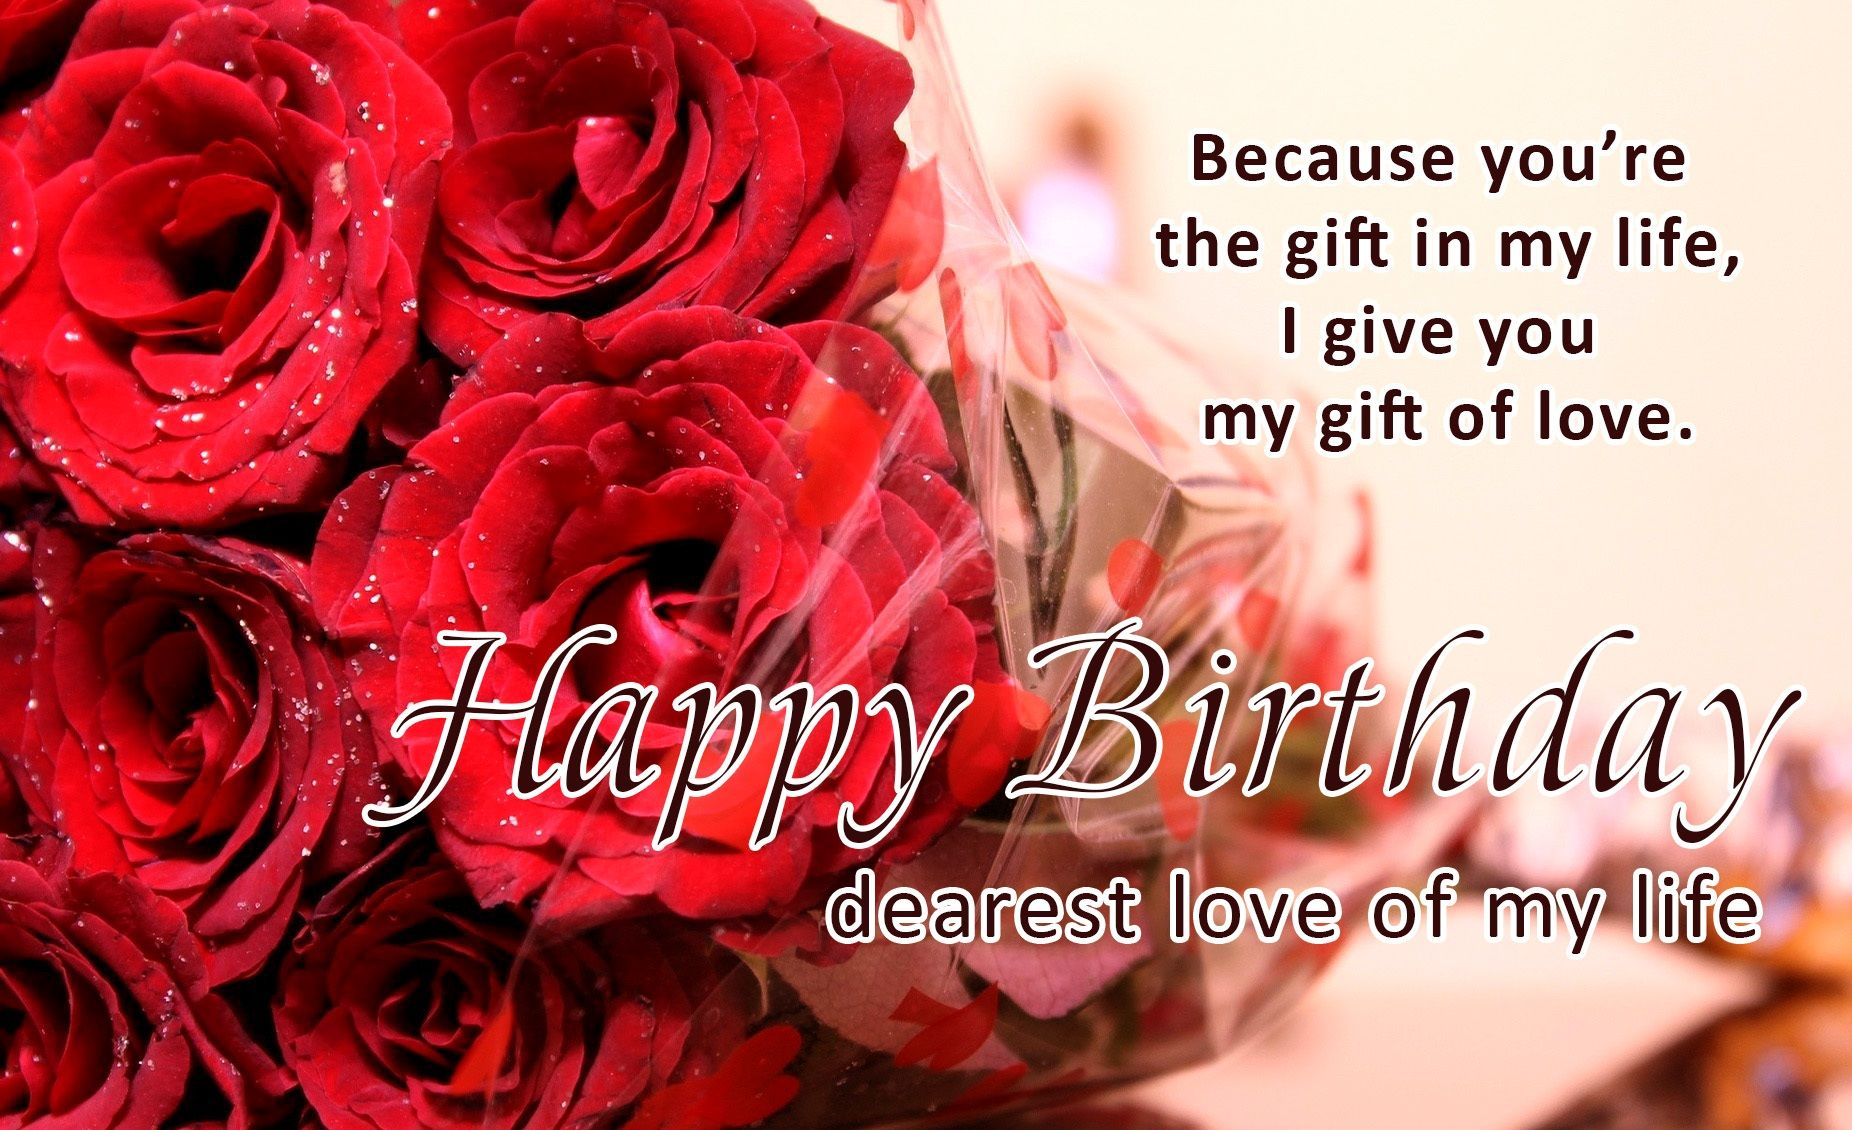 Happy birthday my love birthday cards and wishes happy birthday happy birthday my love birthday cards and wishes bookmarktalkfo Choice Image